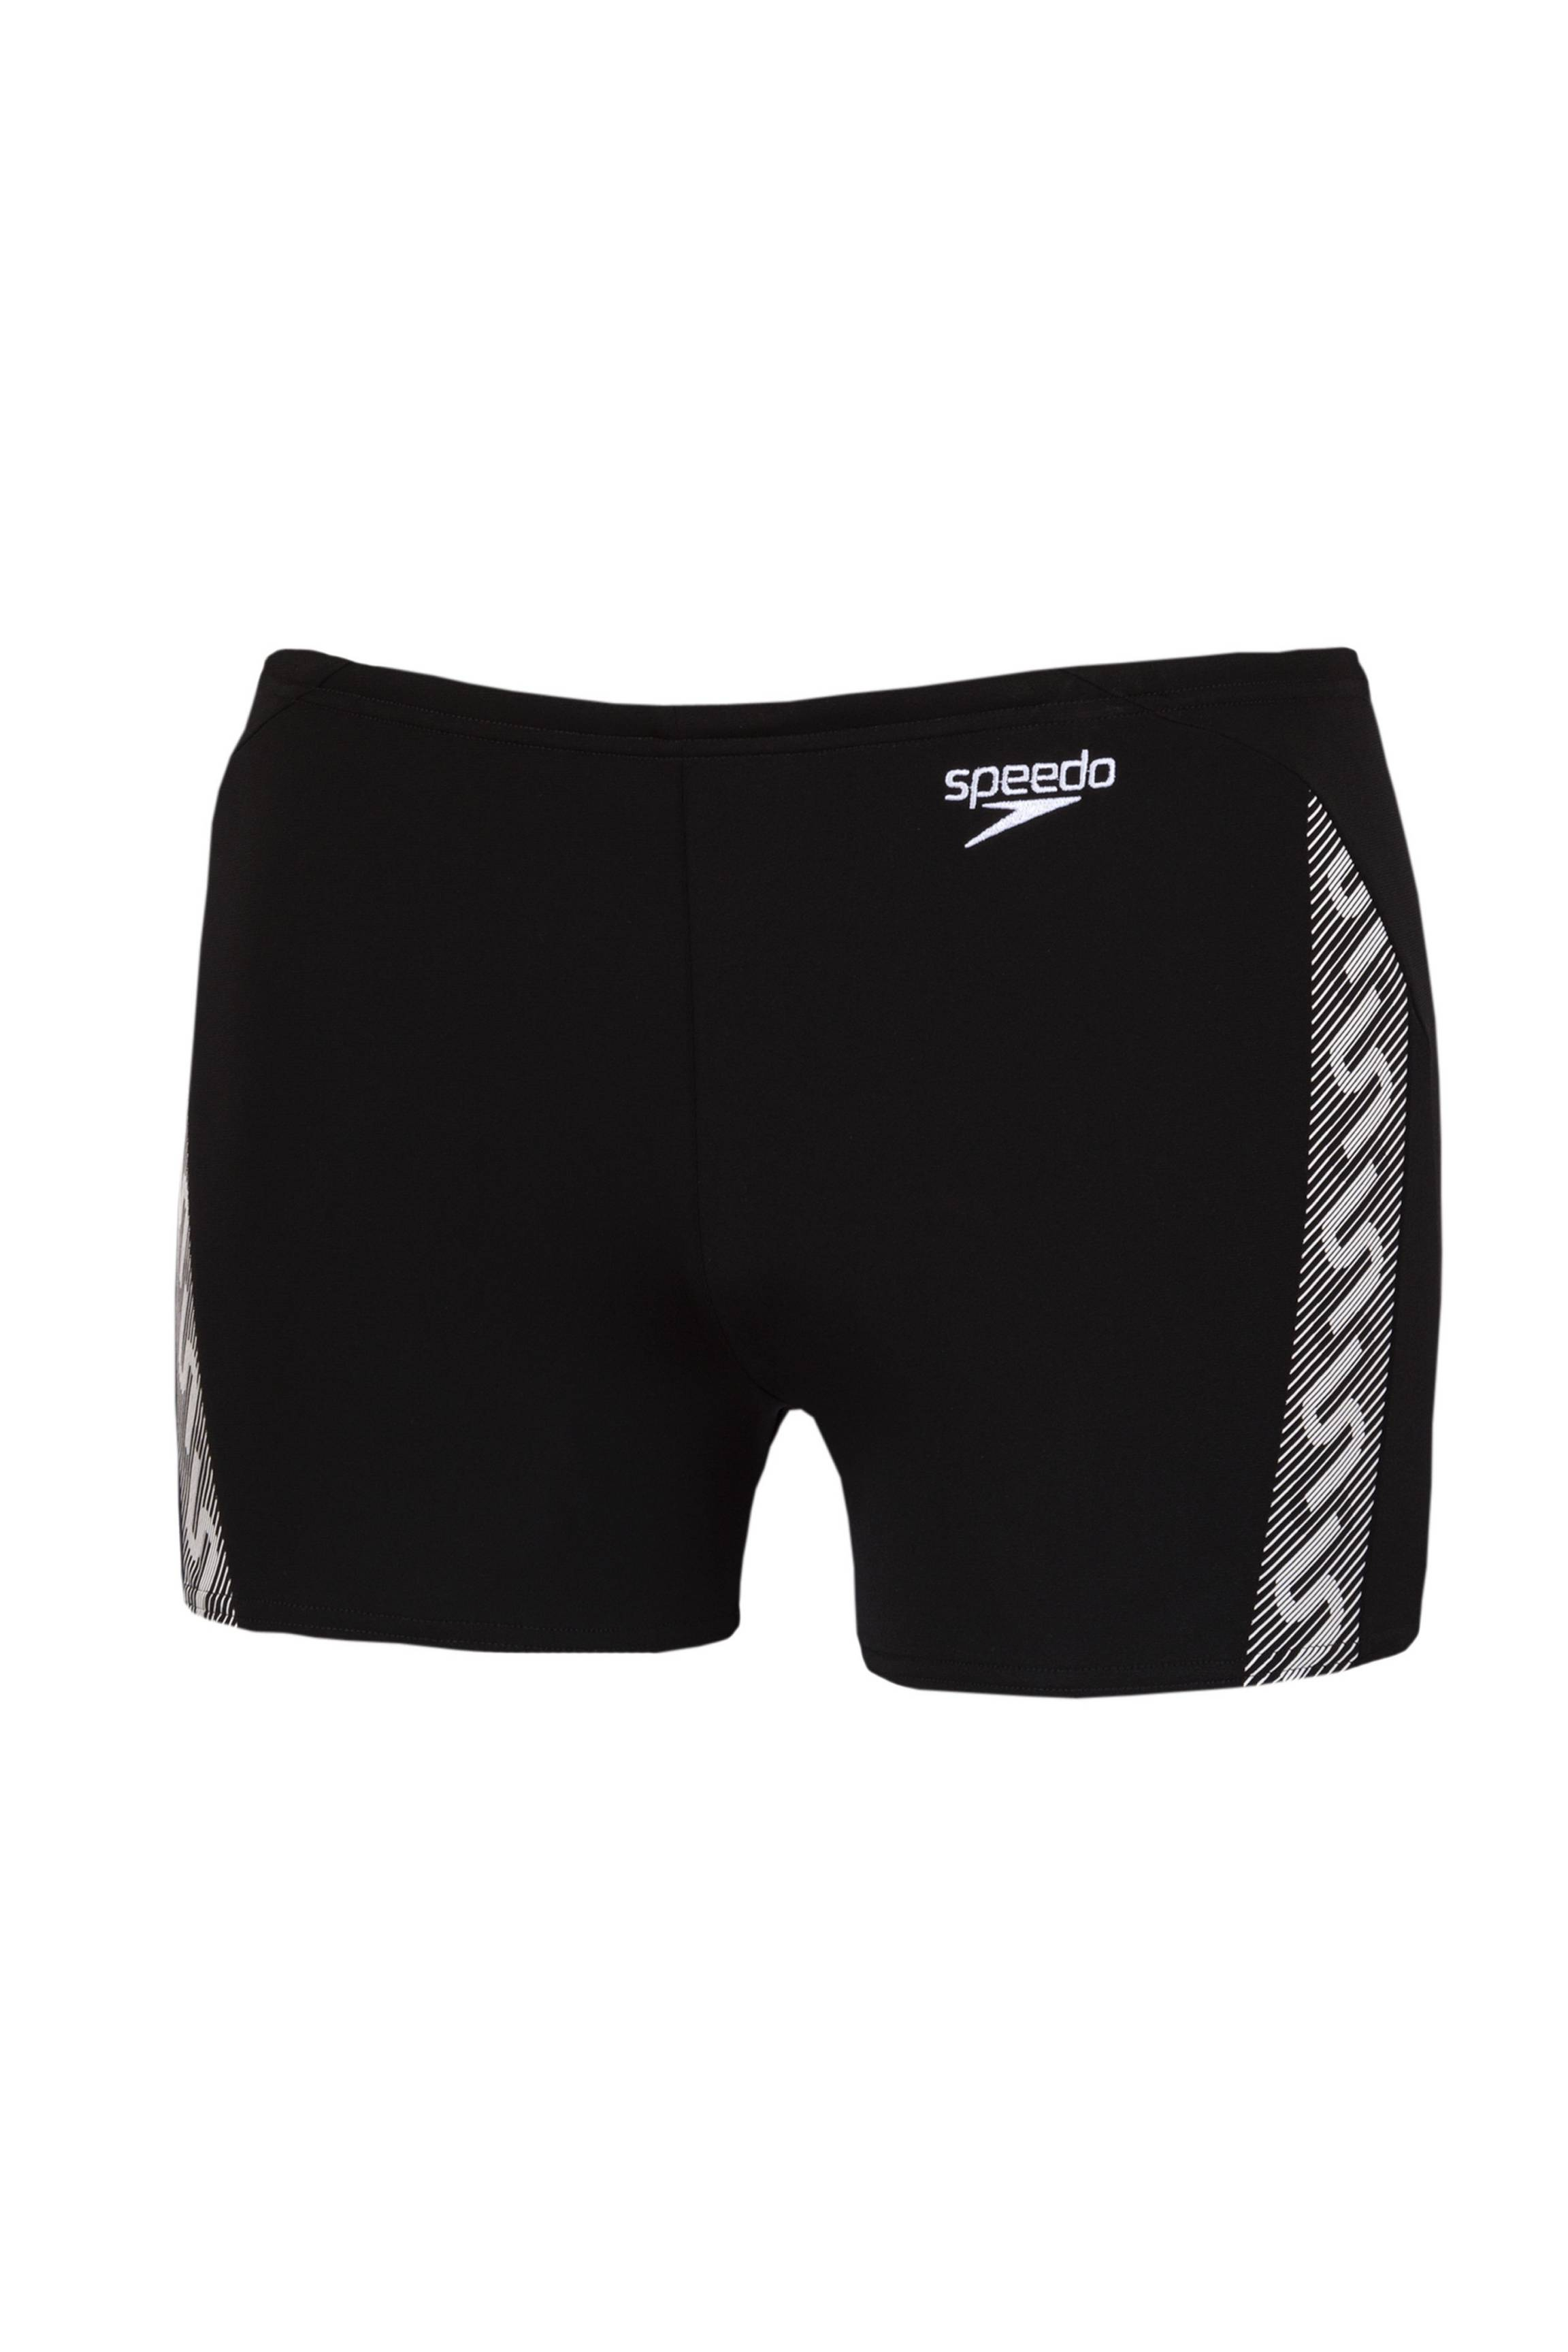 Speedo Monogram Aqua Short Heren zwembroek